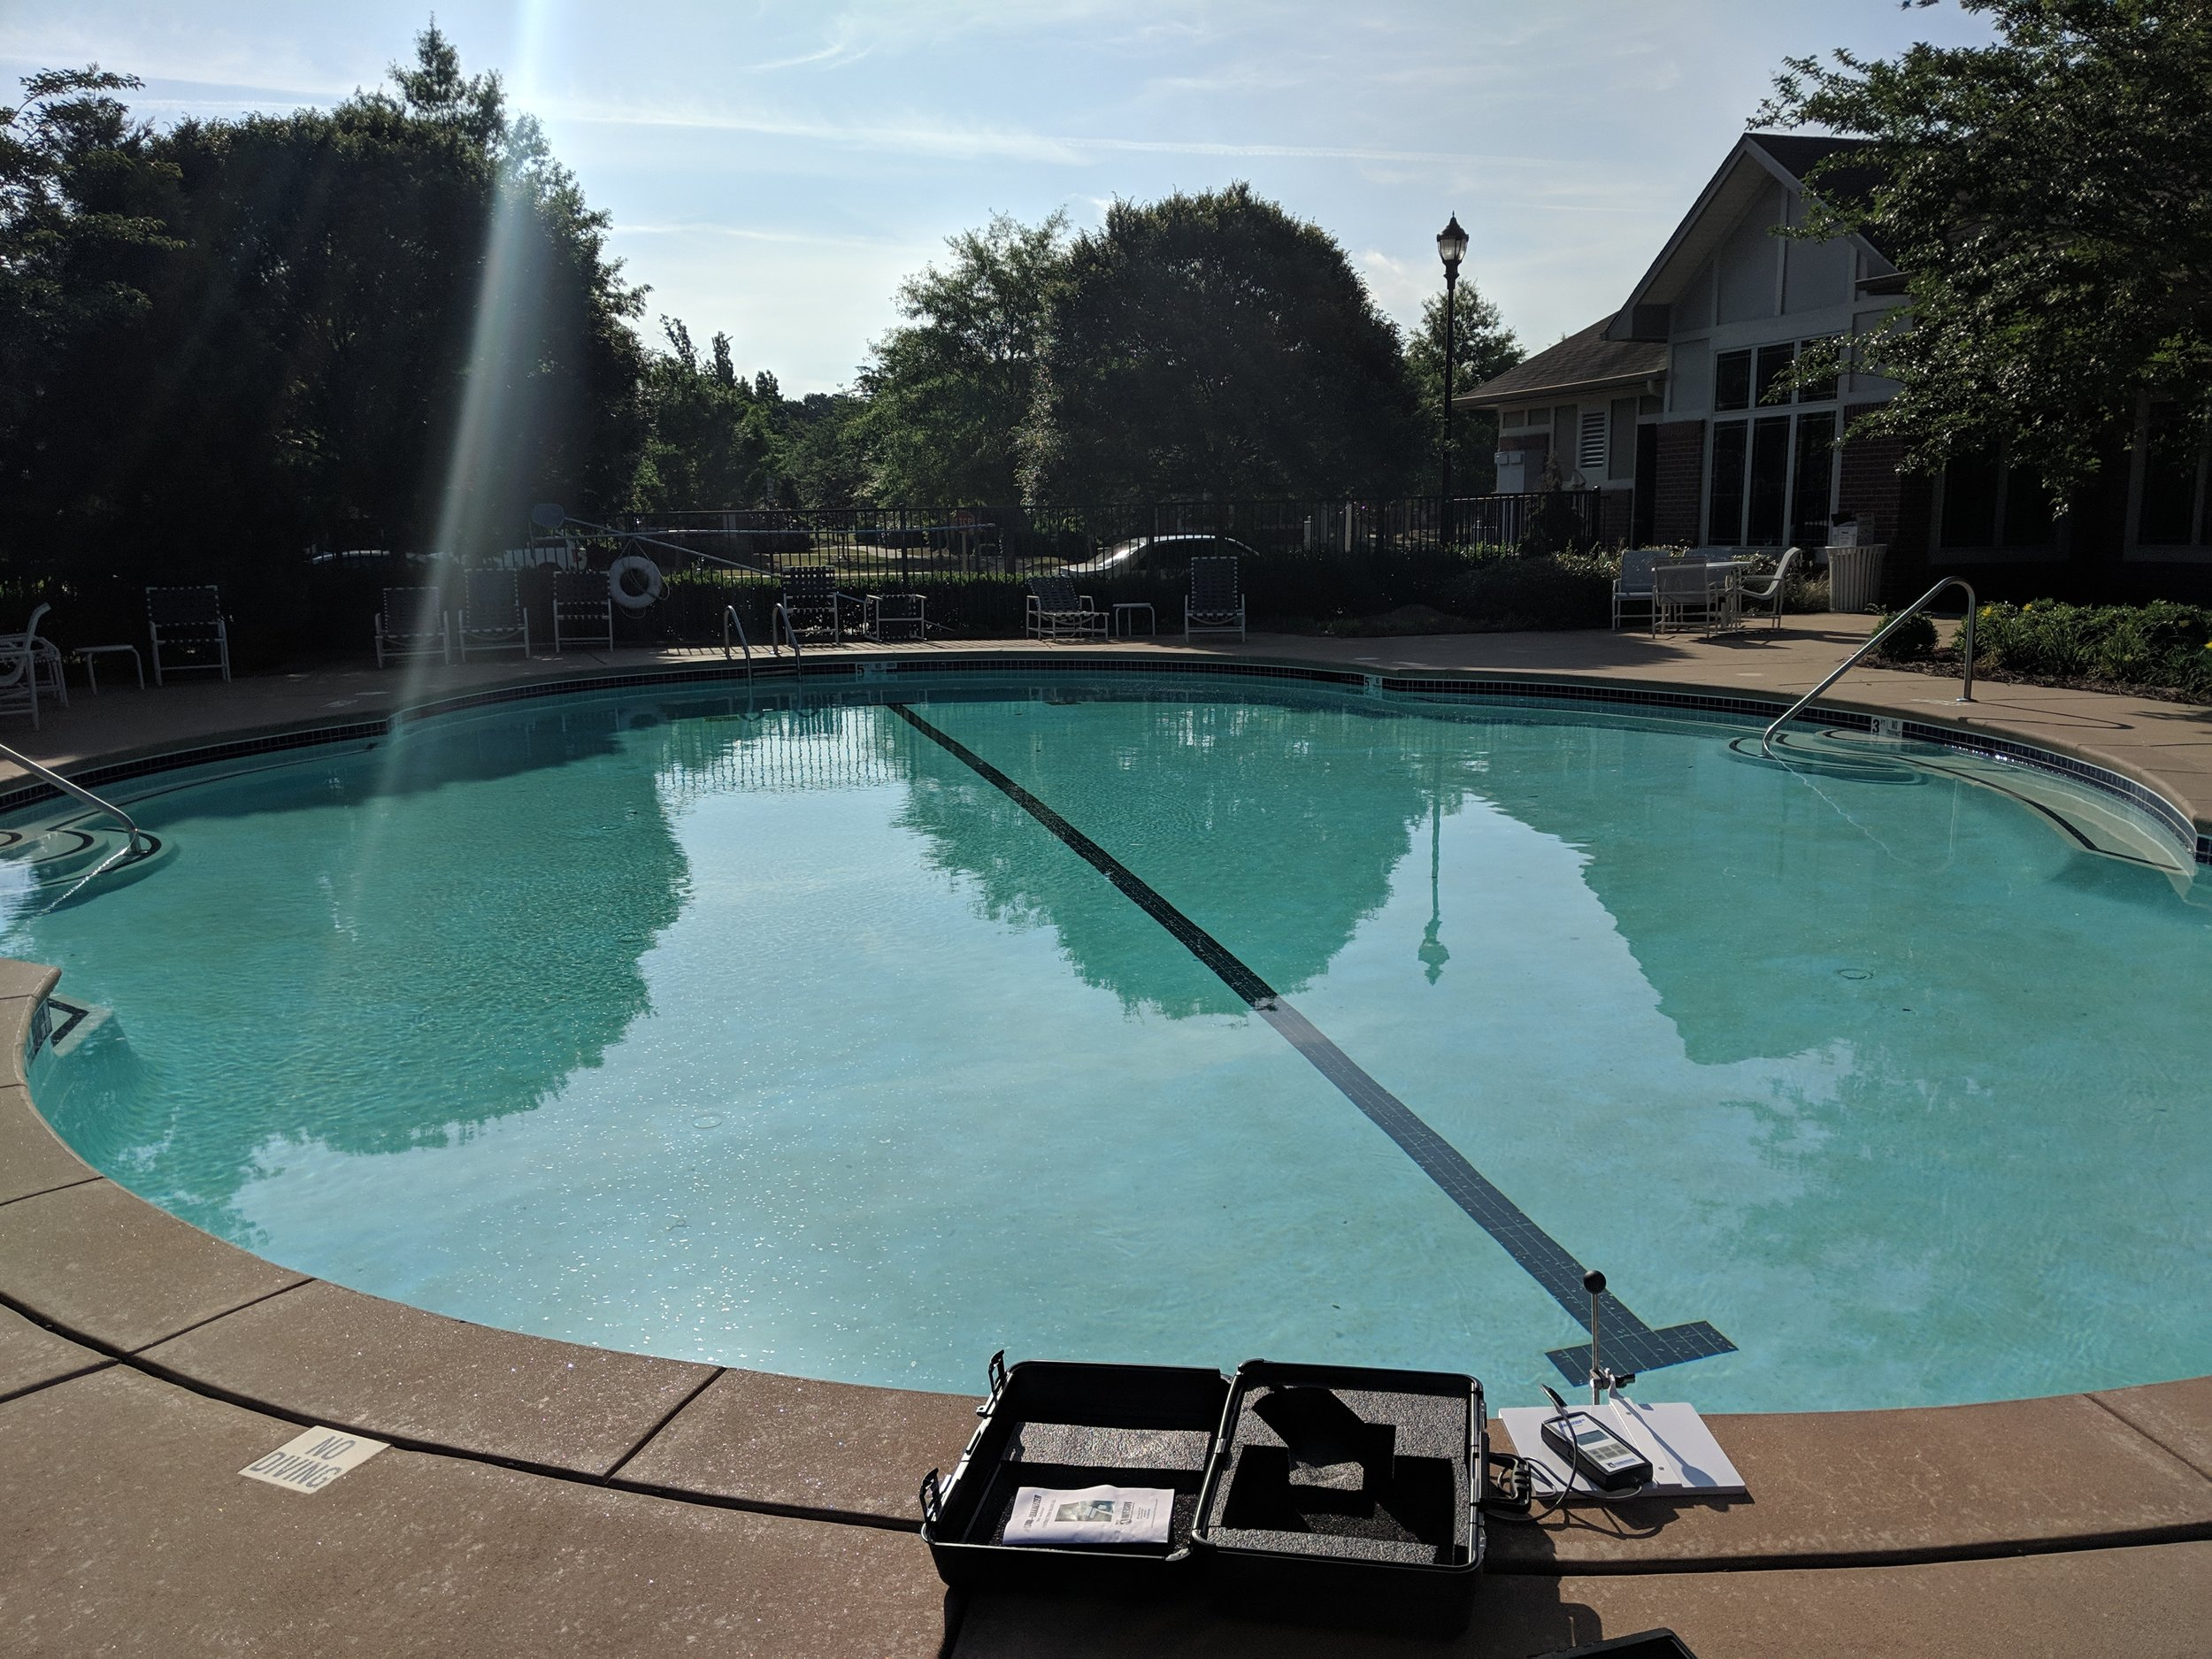 We do pool leak detection - With the latest technology, we can tell you if you have a leak, and how big it is!